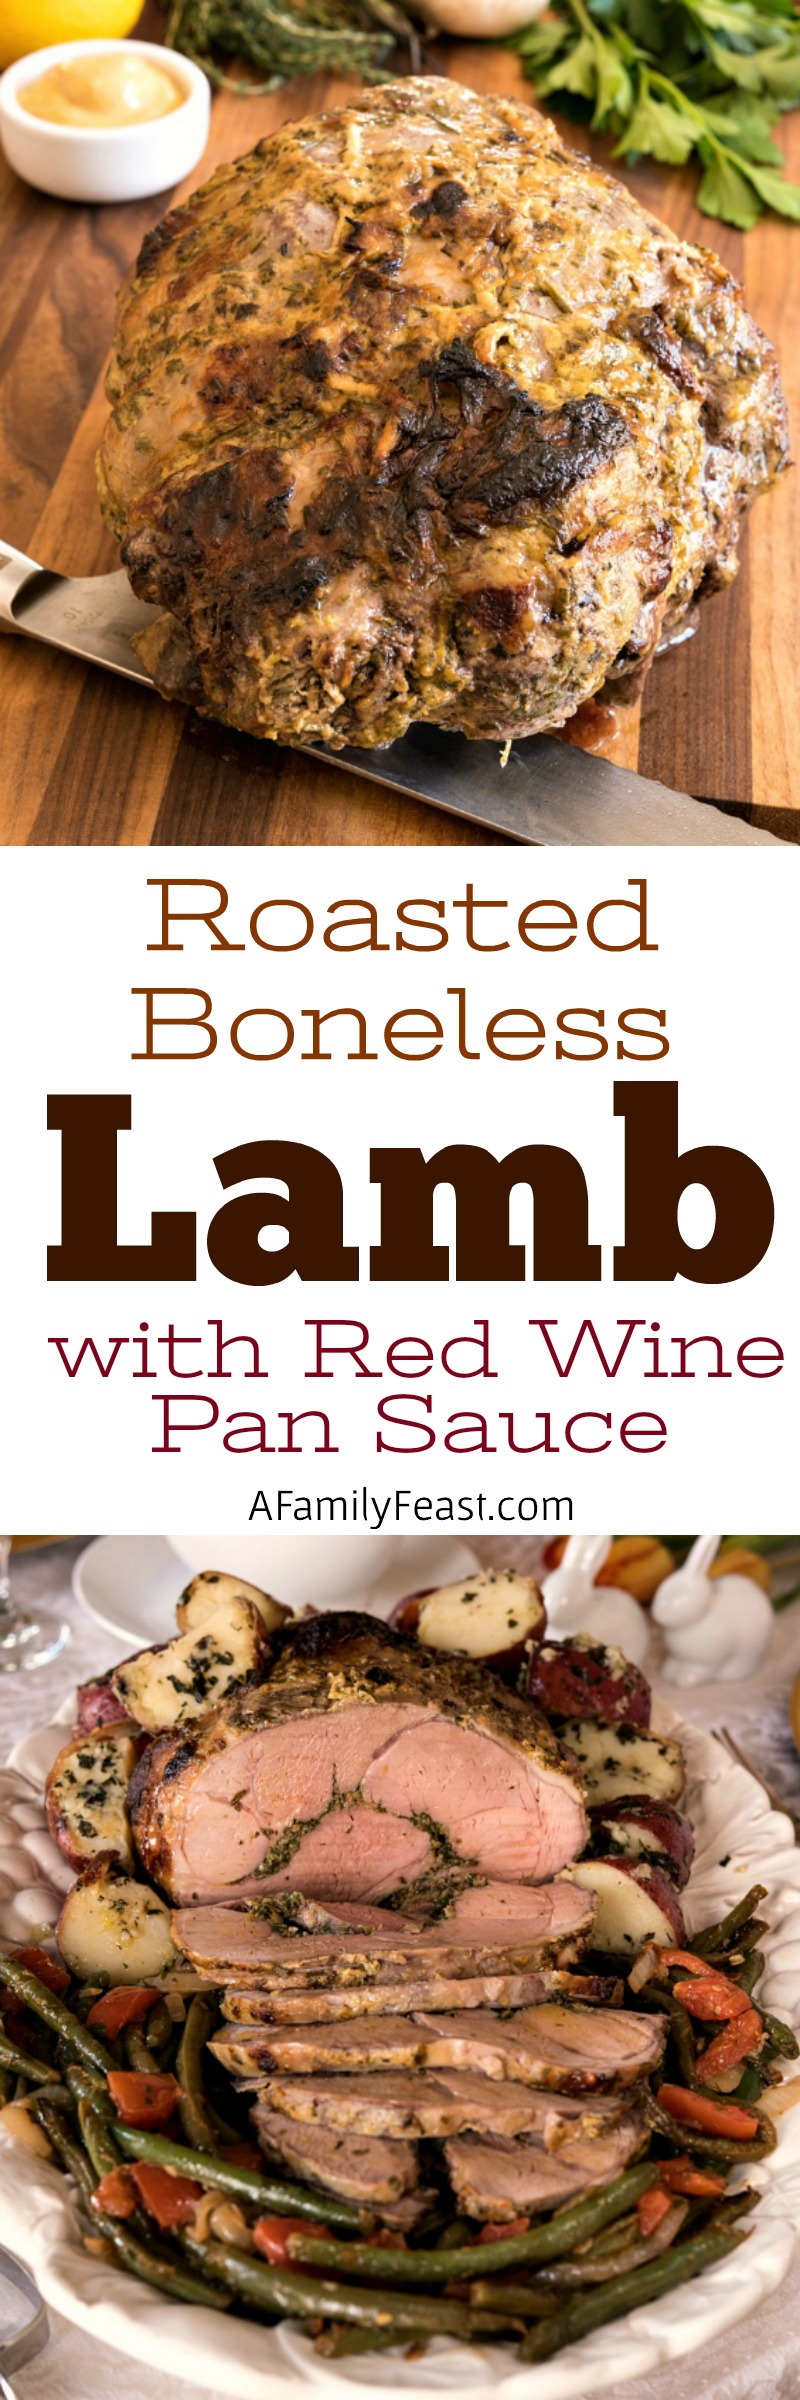 Boneless Roasted Lamb with Red Wine Pan Sauce